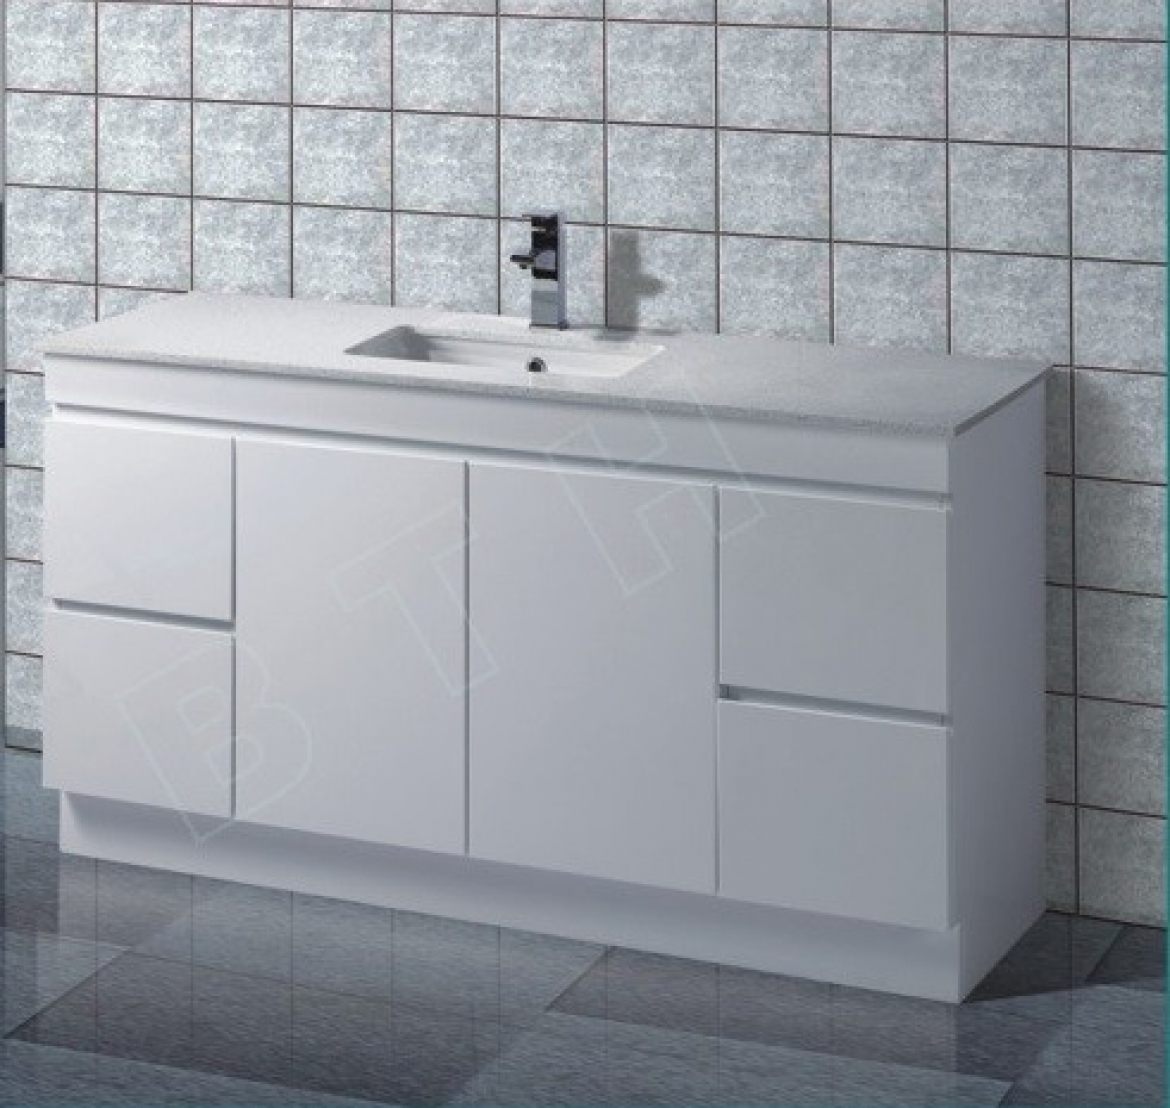 Bathroom stone top vanity [Single Basin-1600 mm]